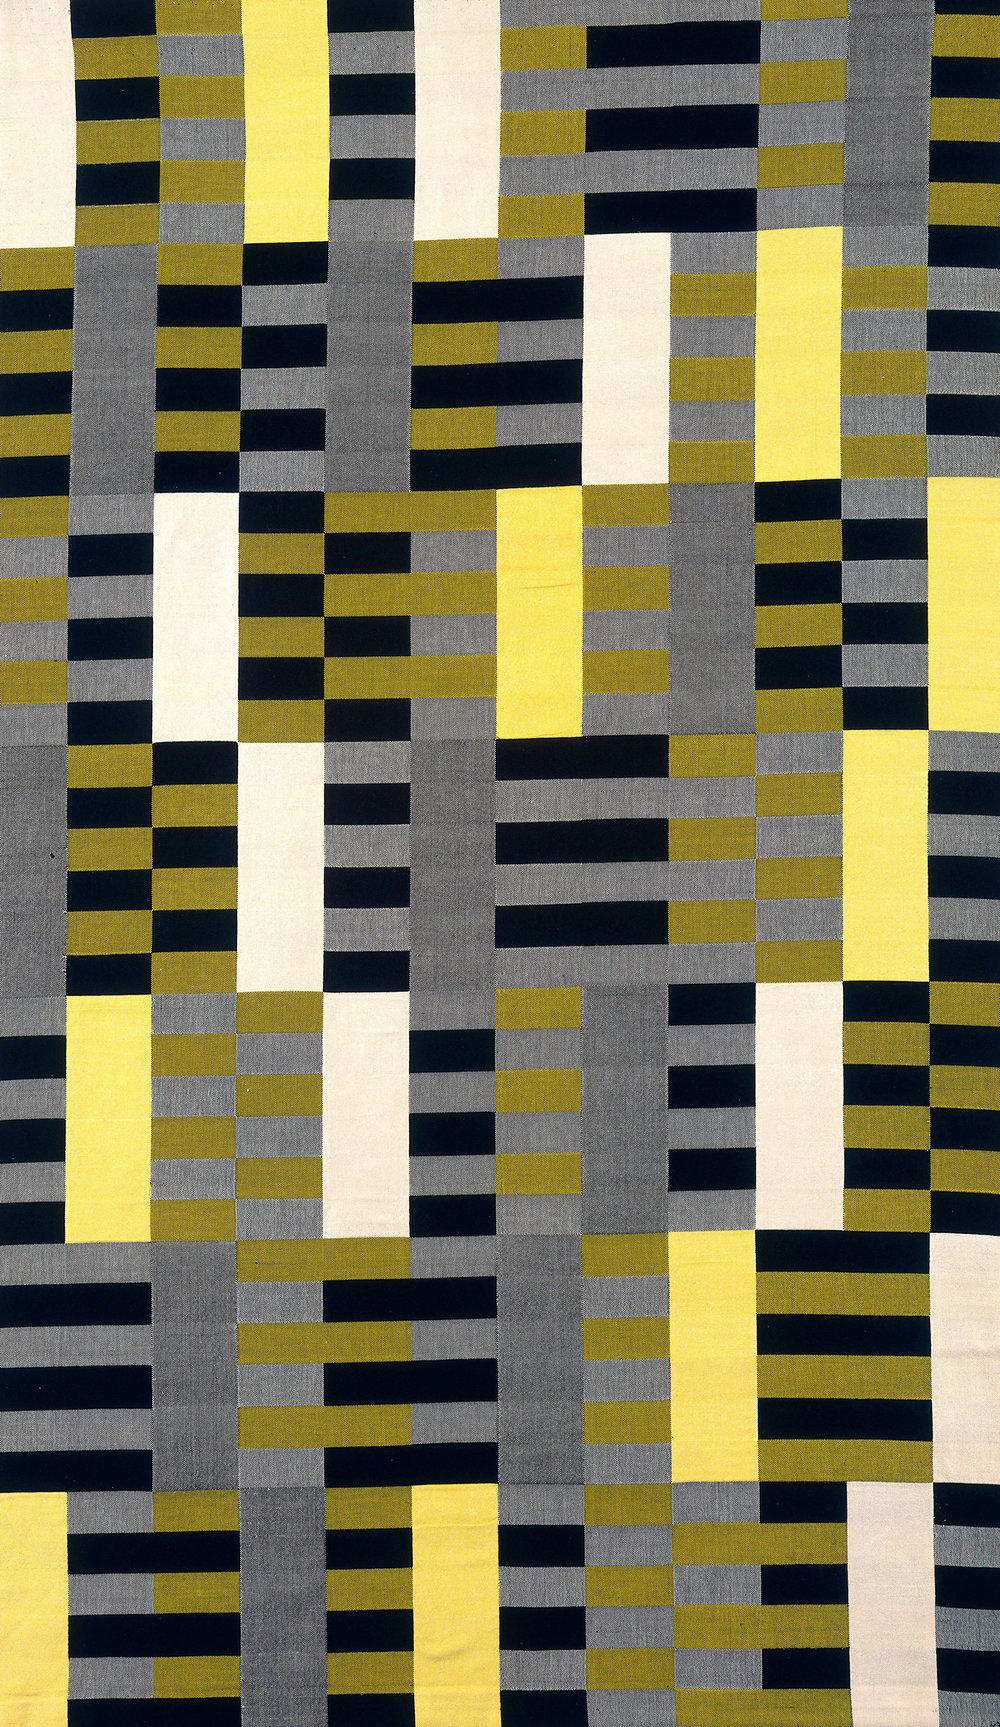 Anni Albers   Wall Hanging  1926, Mercerized cotton, silk, 2032 x 1207 mm, The Metropolitan Museum of Art, Purchase, Everfast Fabrics Inc. and Edward C. Moore Jr. Gift, 1969 © 2018 The Josef and Anni Albers Foundation / Artists Rights Society (ARS), New York/DACS, London